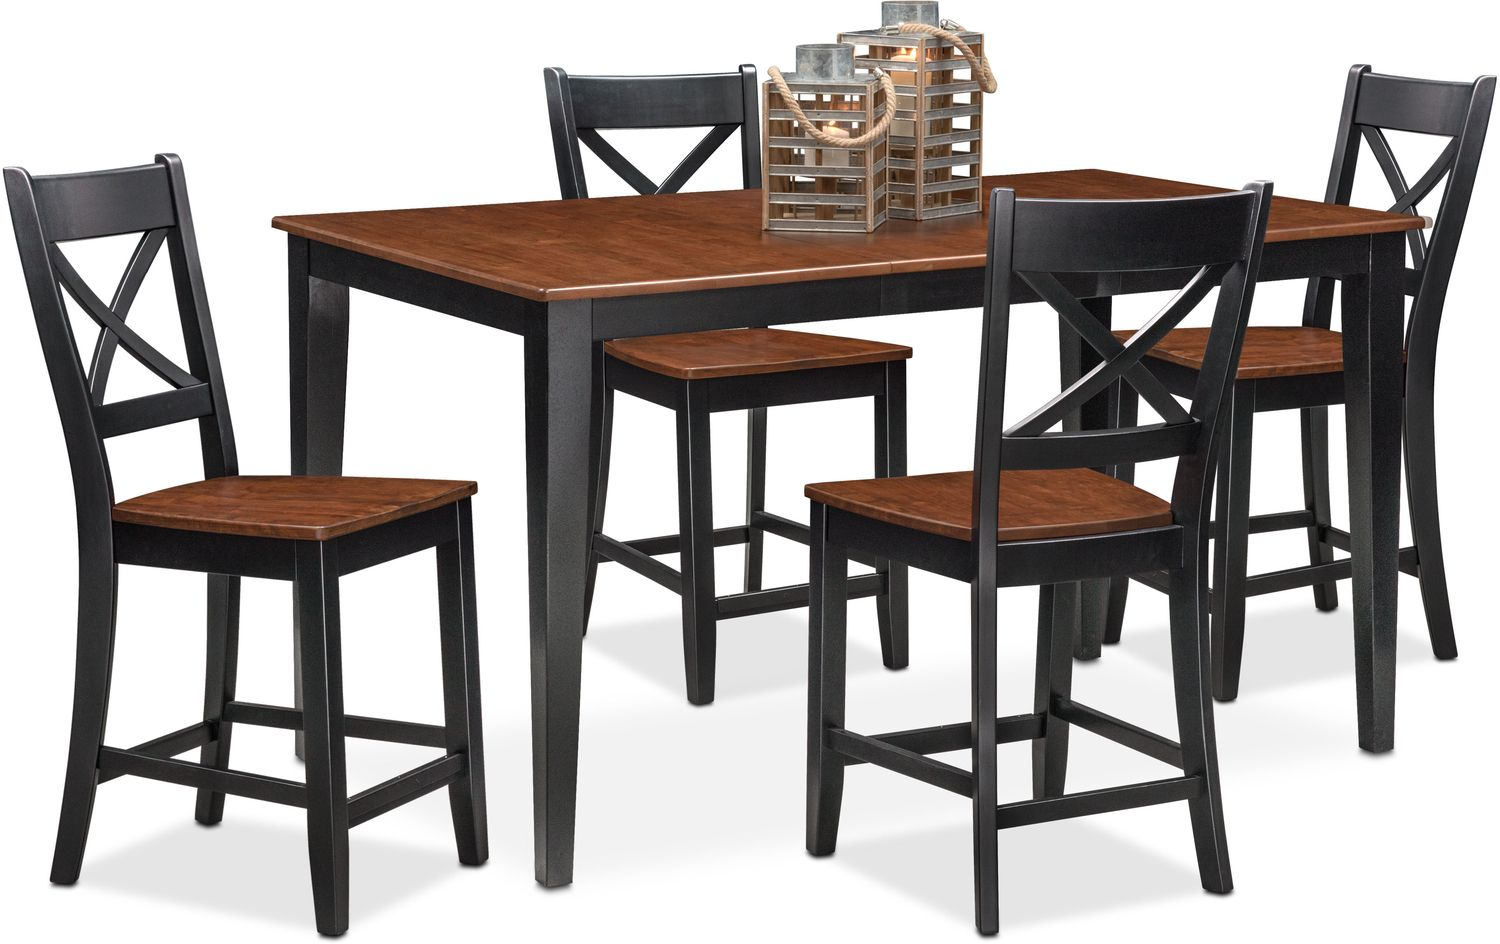 Nantucket counter height table and 4 side chairs black for Dining room tables bench one side